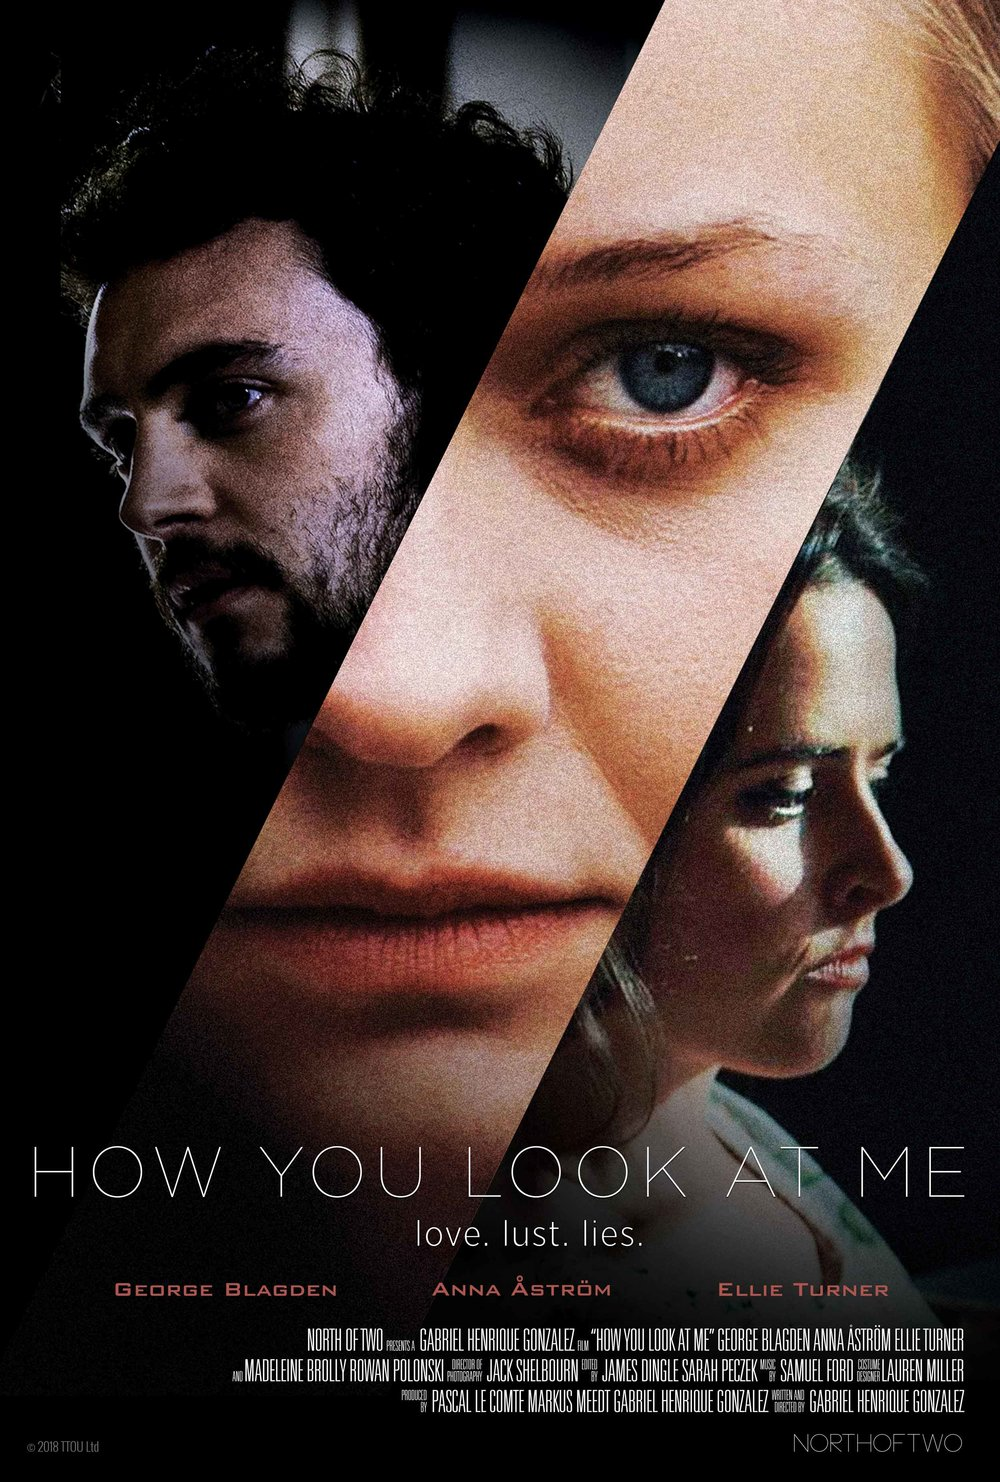 HowYouLookAtMe-POSTER_FINAL_web.jpg